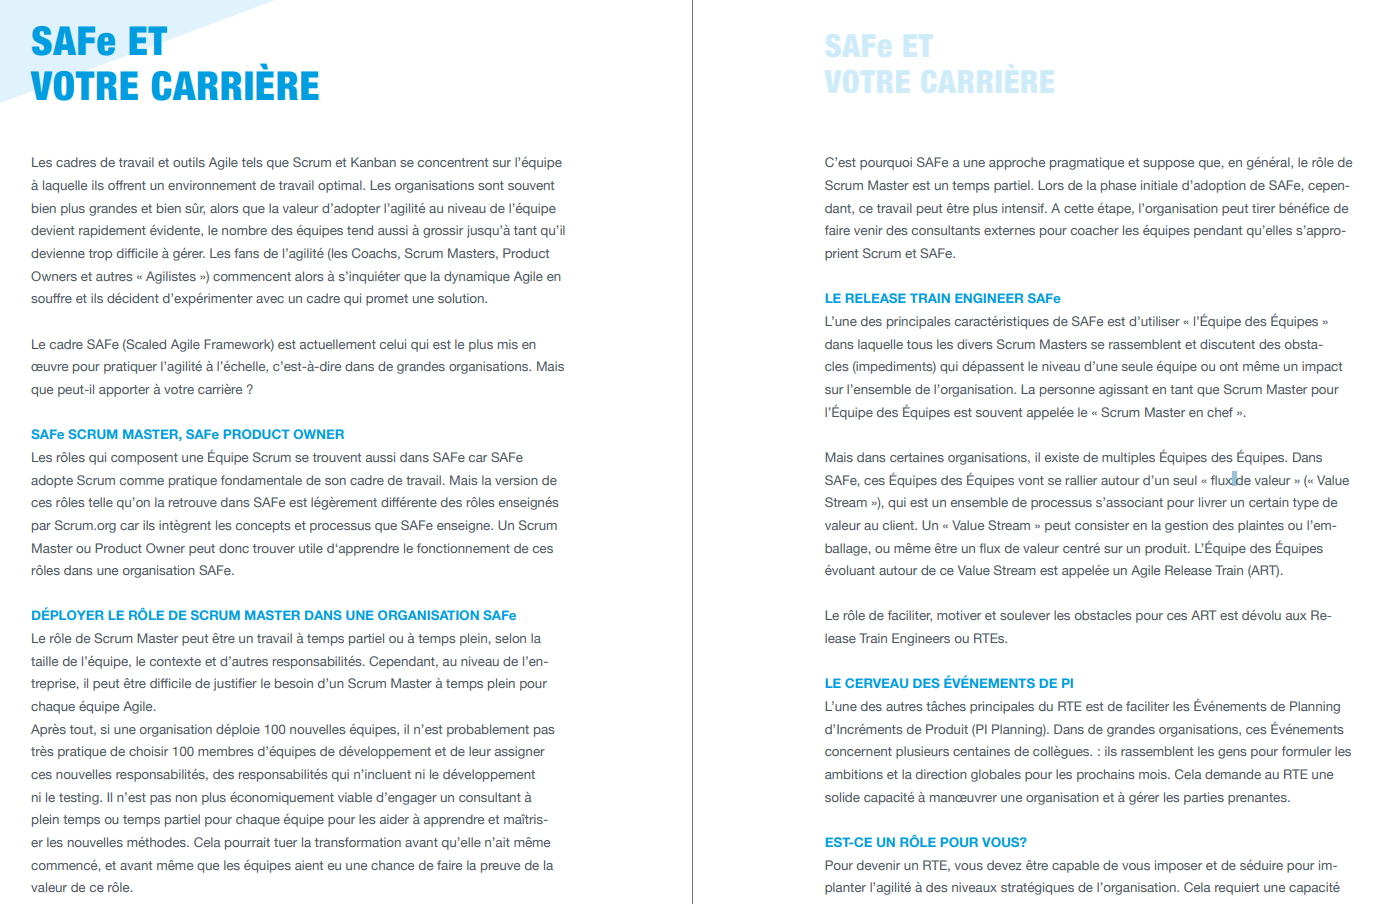 English-French translation of a white paper